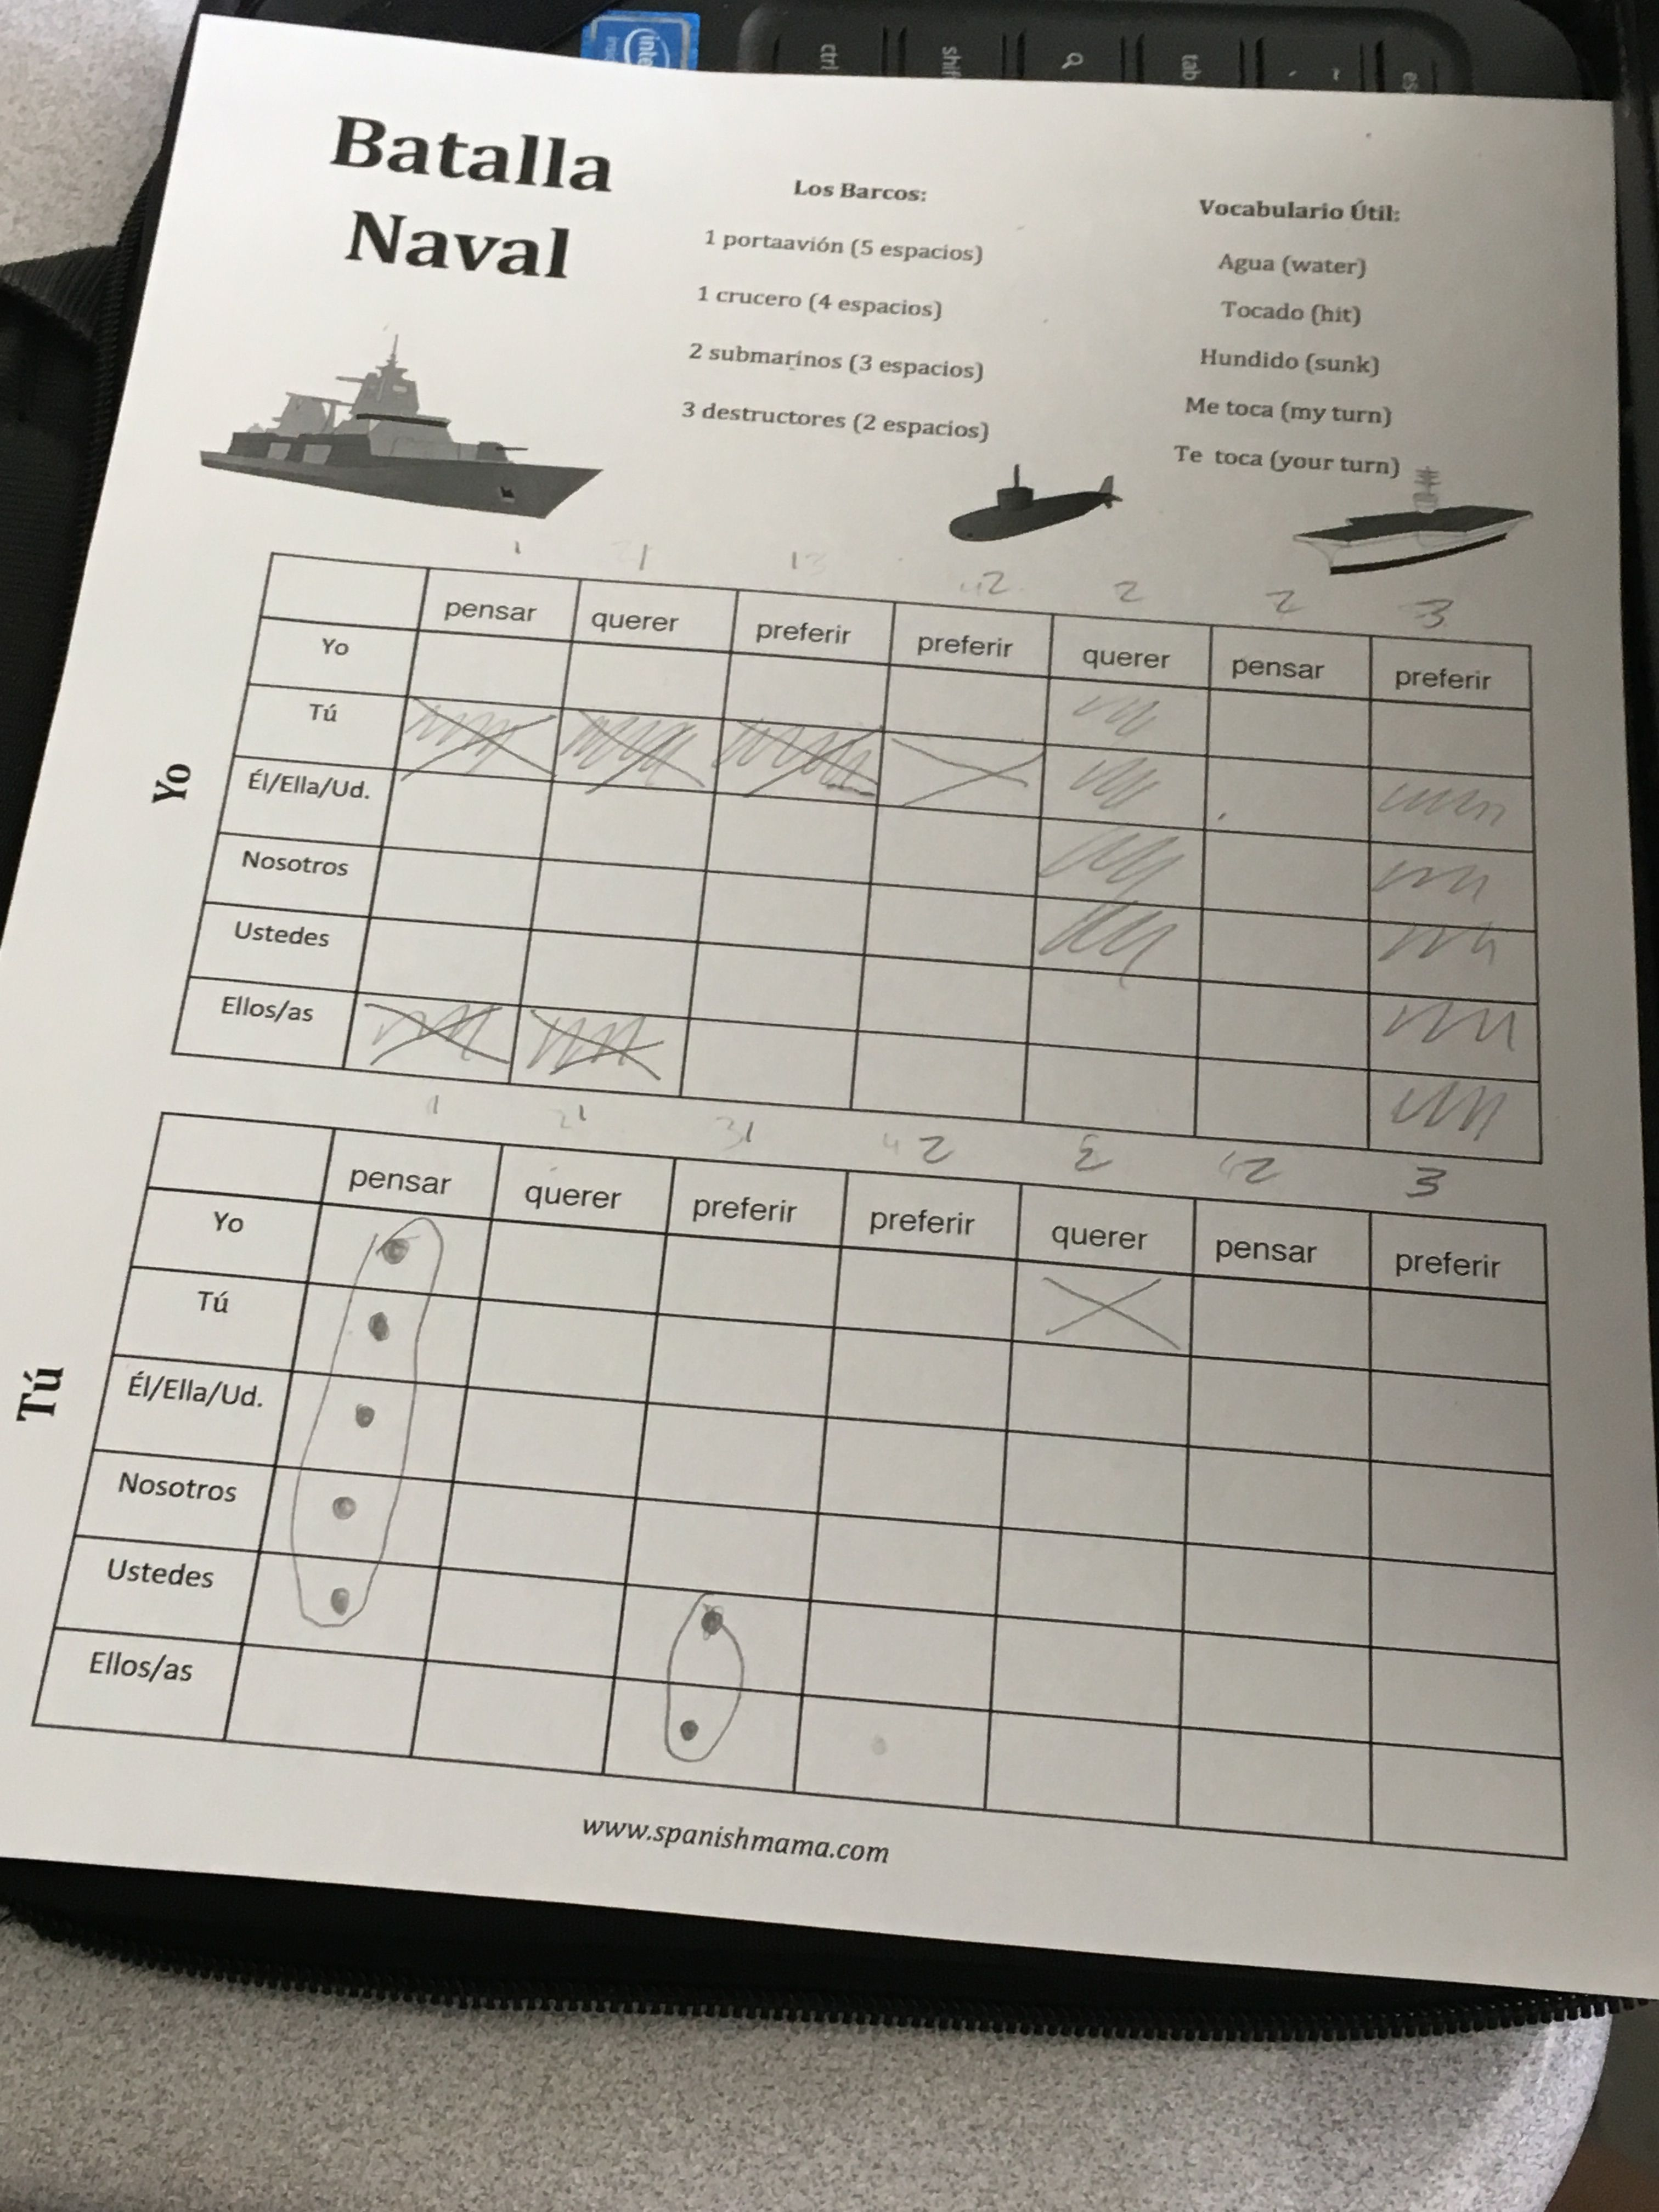 Battleship For Spanish Class Can Simplify This By Just Using Numbers And Letters On The Axis Spanish Classroom Games Spanish Lessons Spanish Class